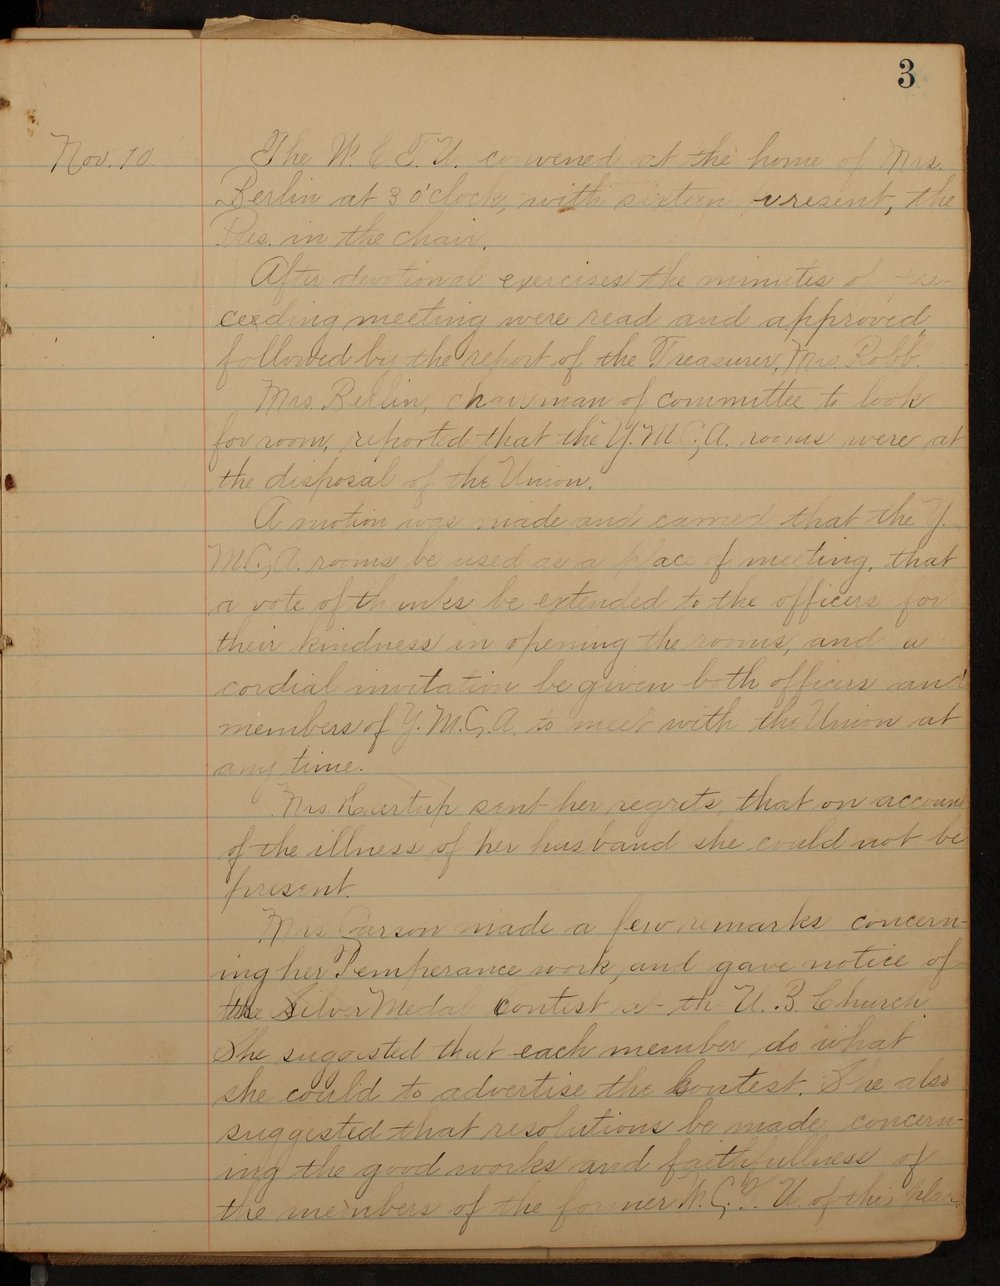 Minutes of the McPherson Chapter of the Woman's Christian Temperance Union - 3